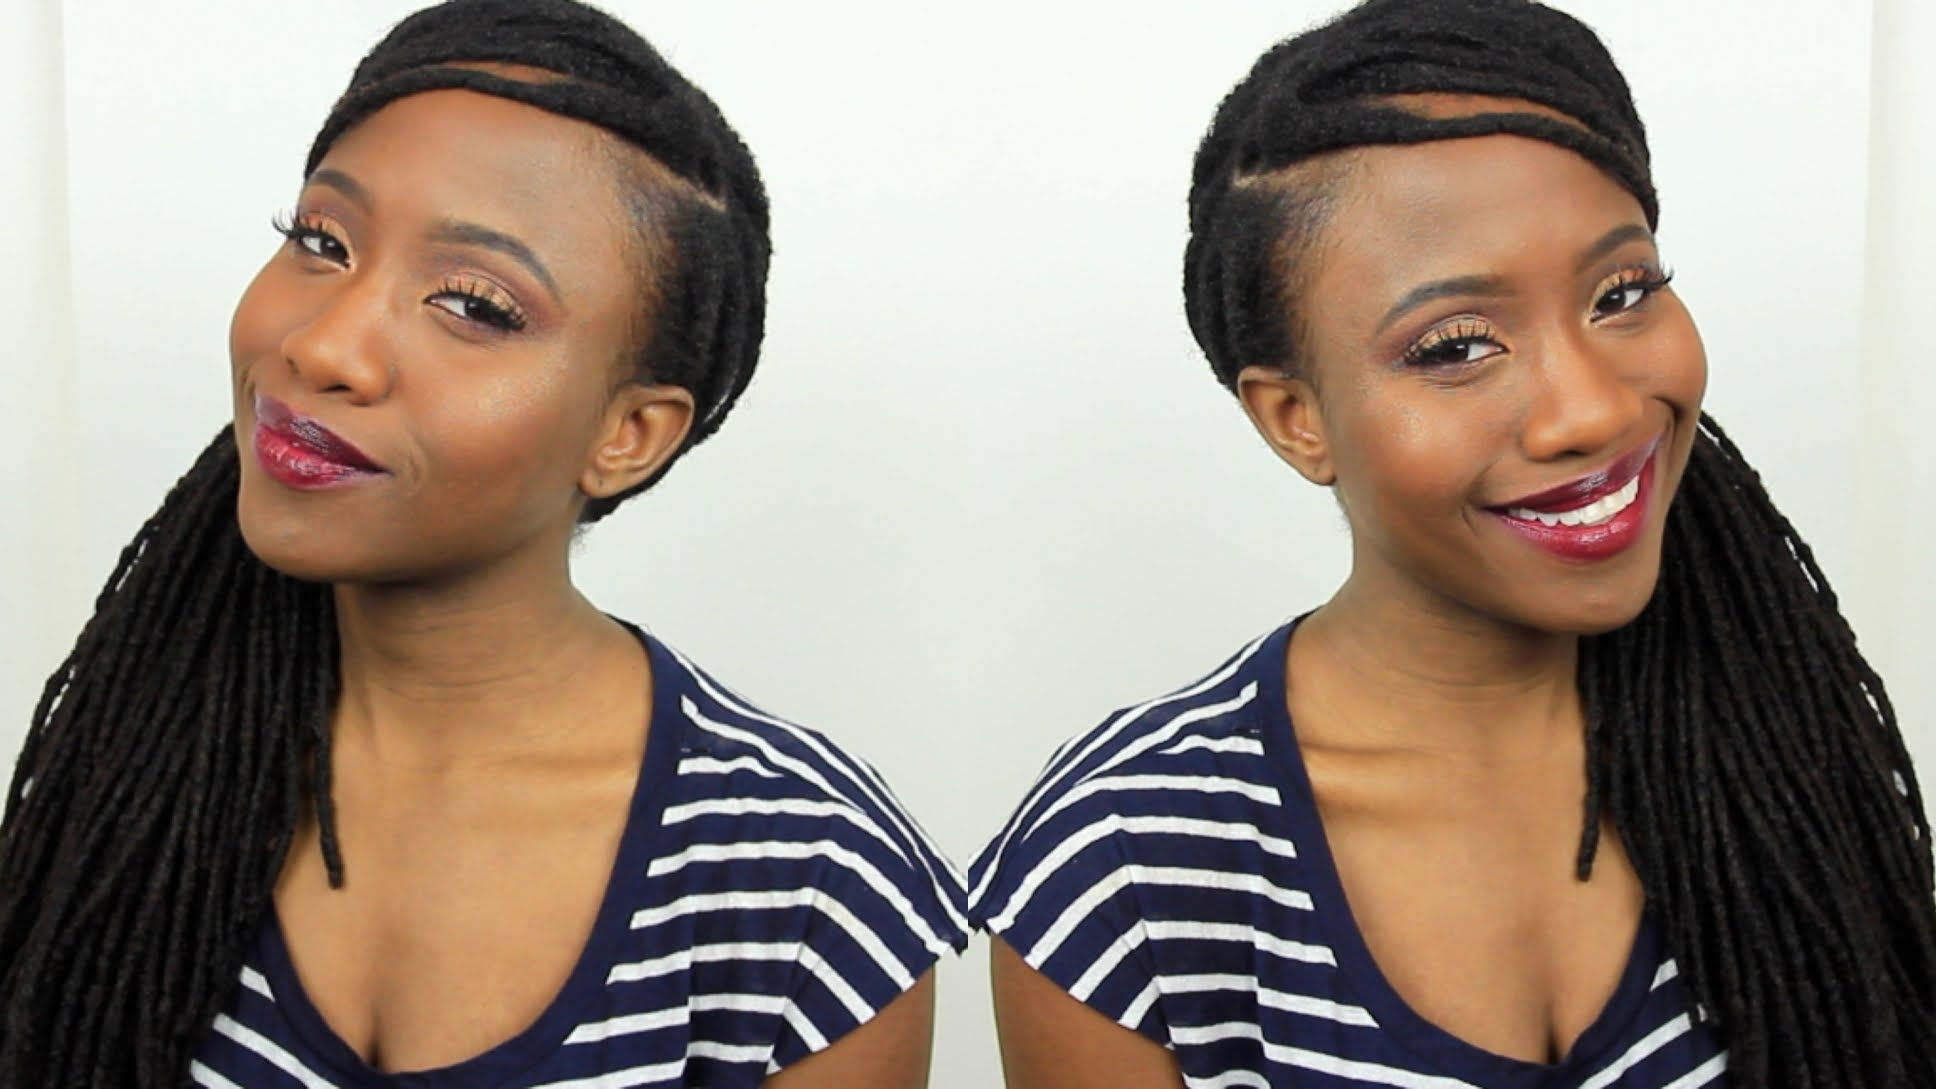 black hairstyles to cover edges